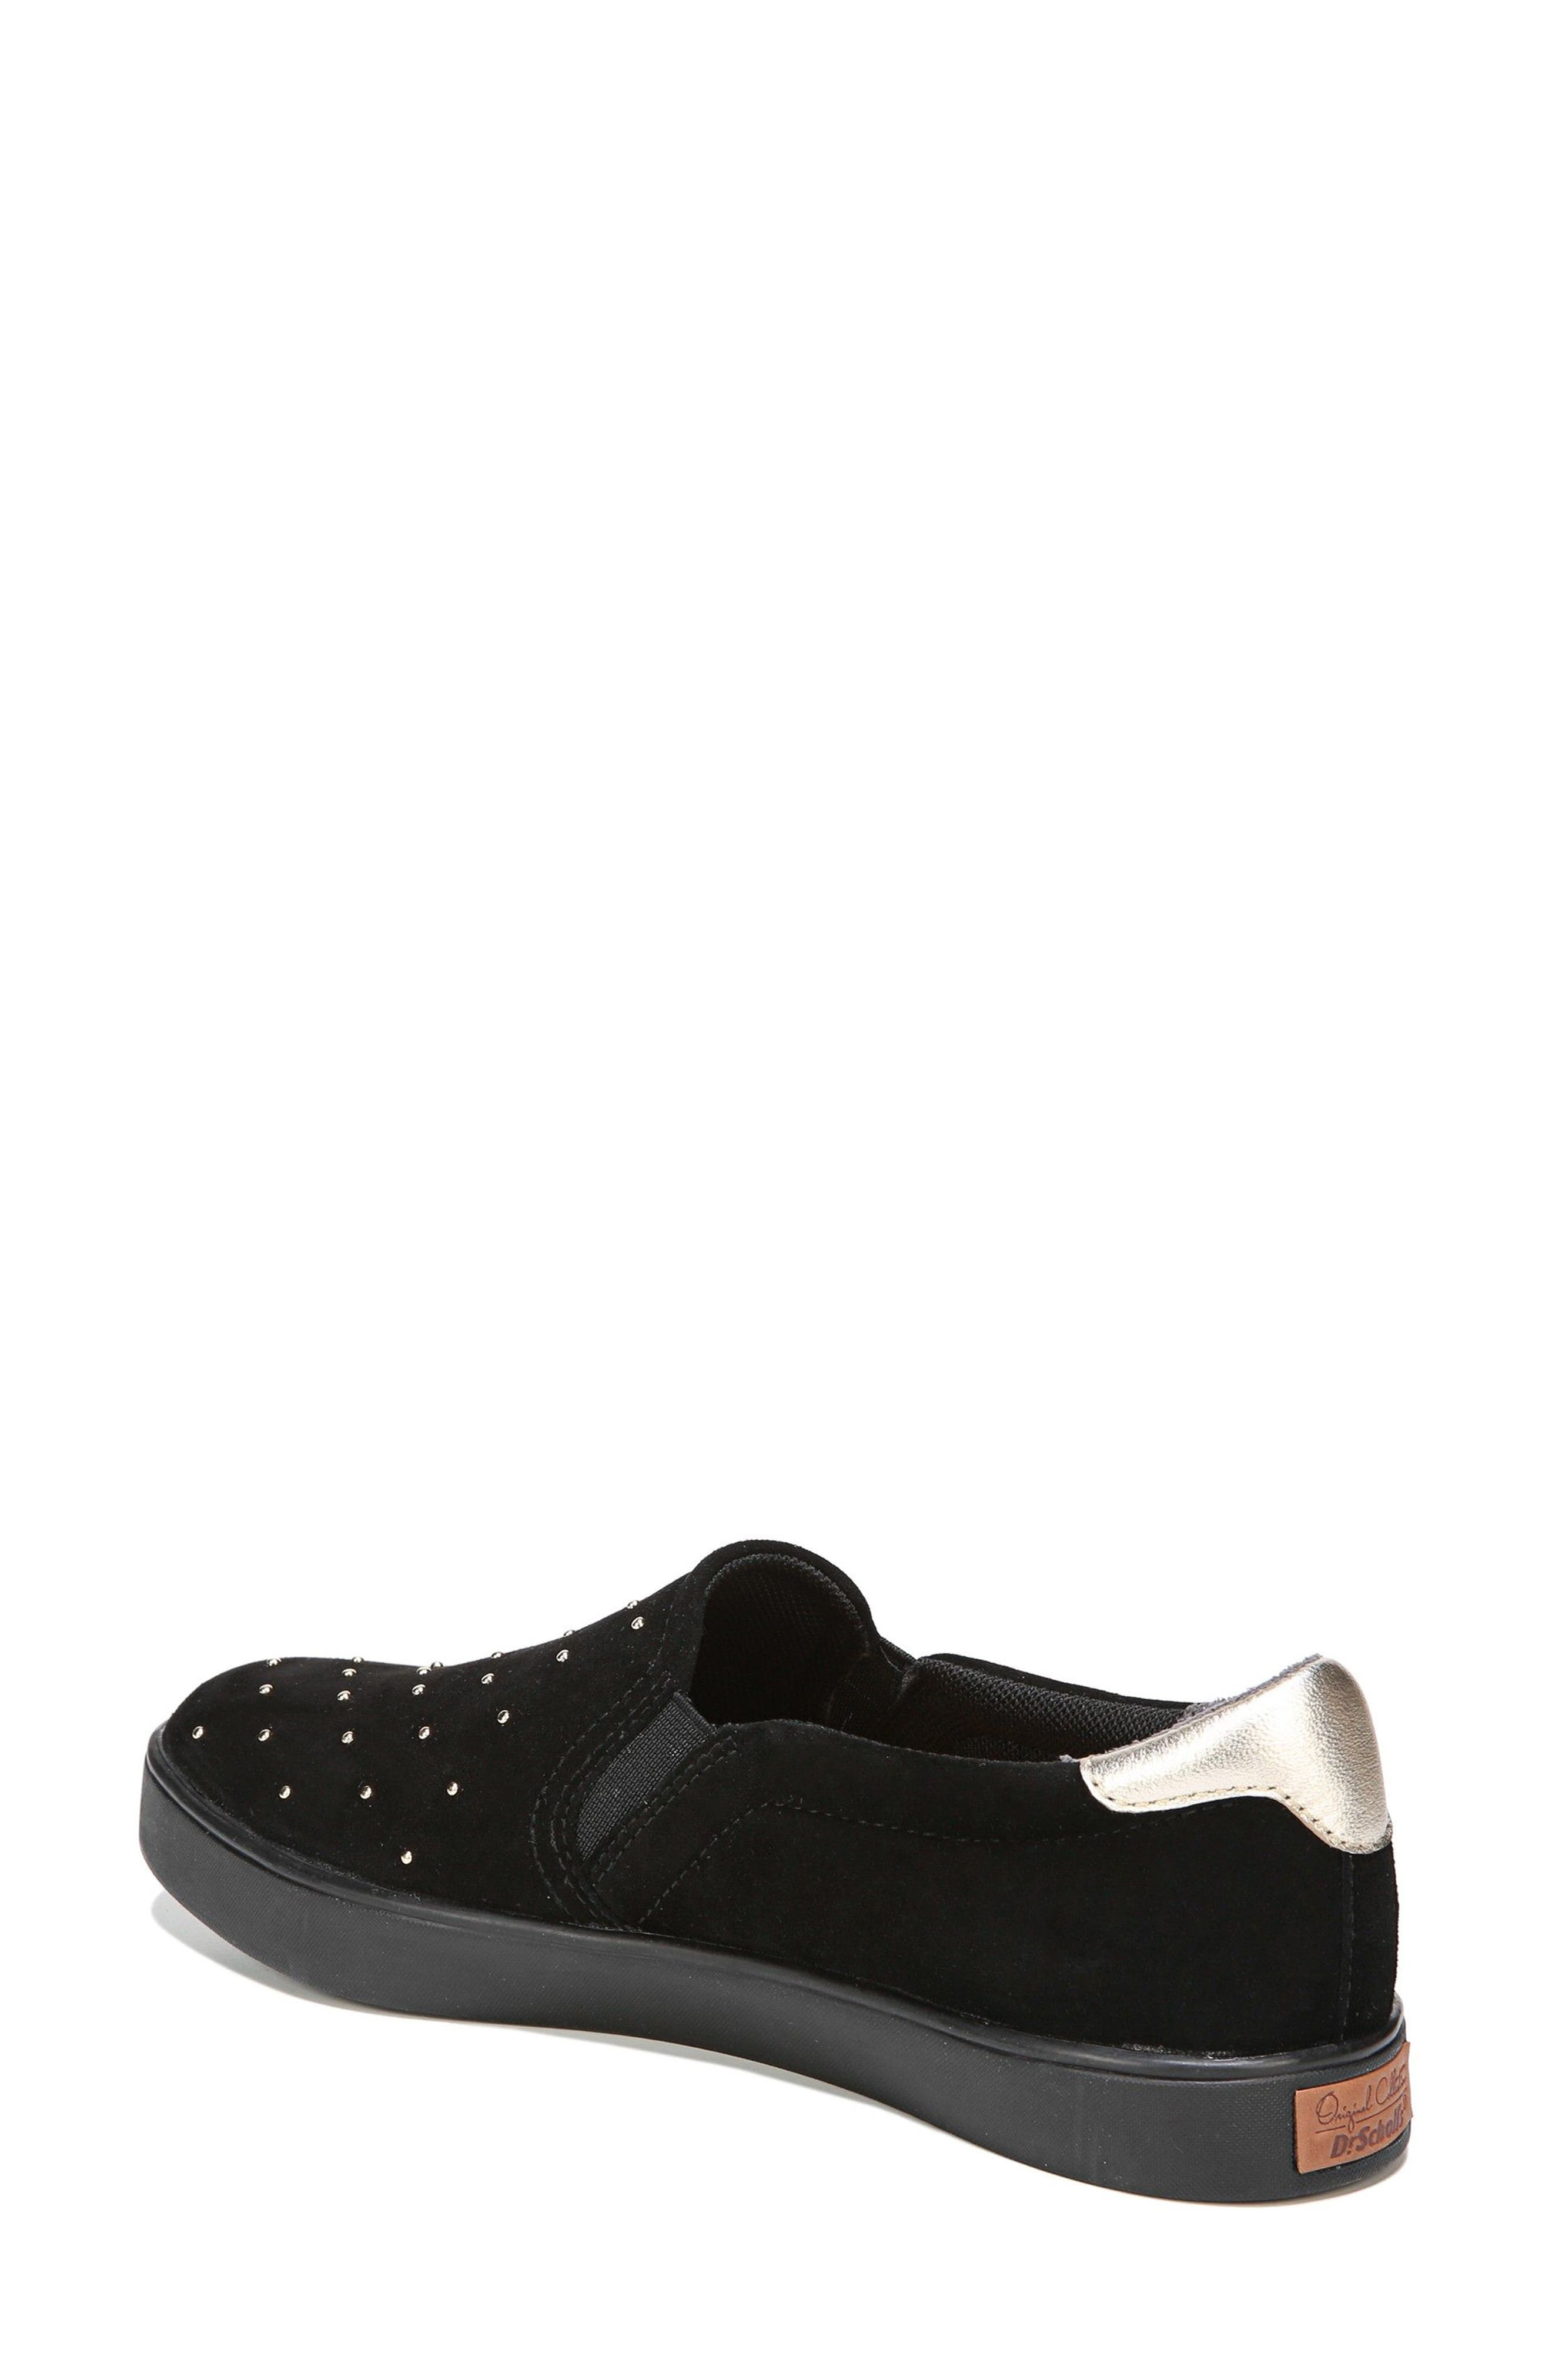 Original Collection 'Scout' Slip On Sneaker,                             Alternate thumbnail 2, color,                             Black Suede